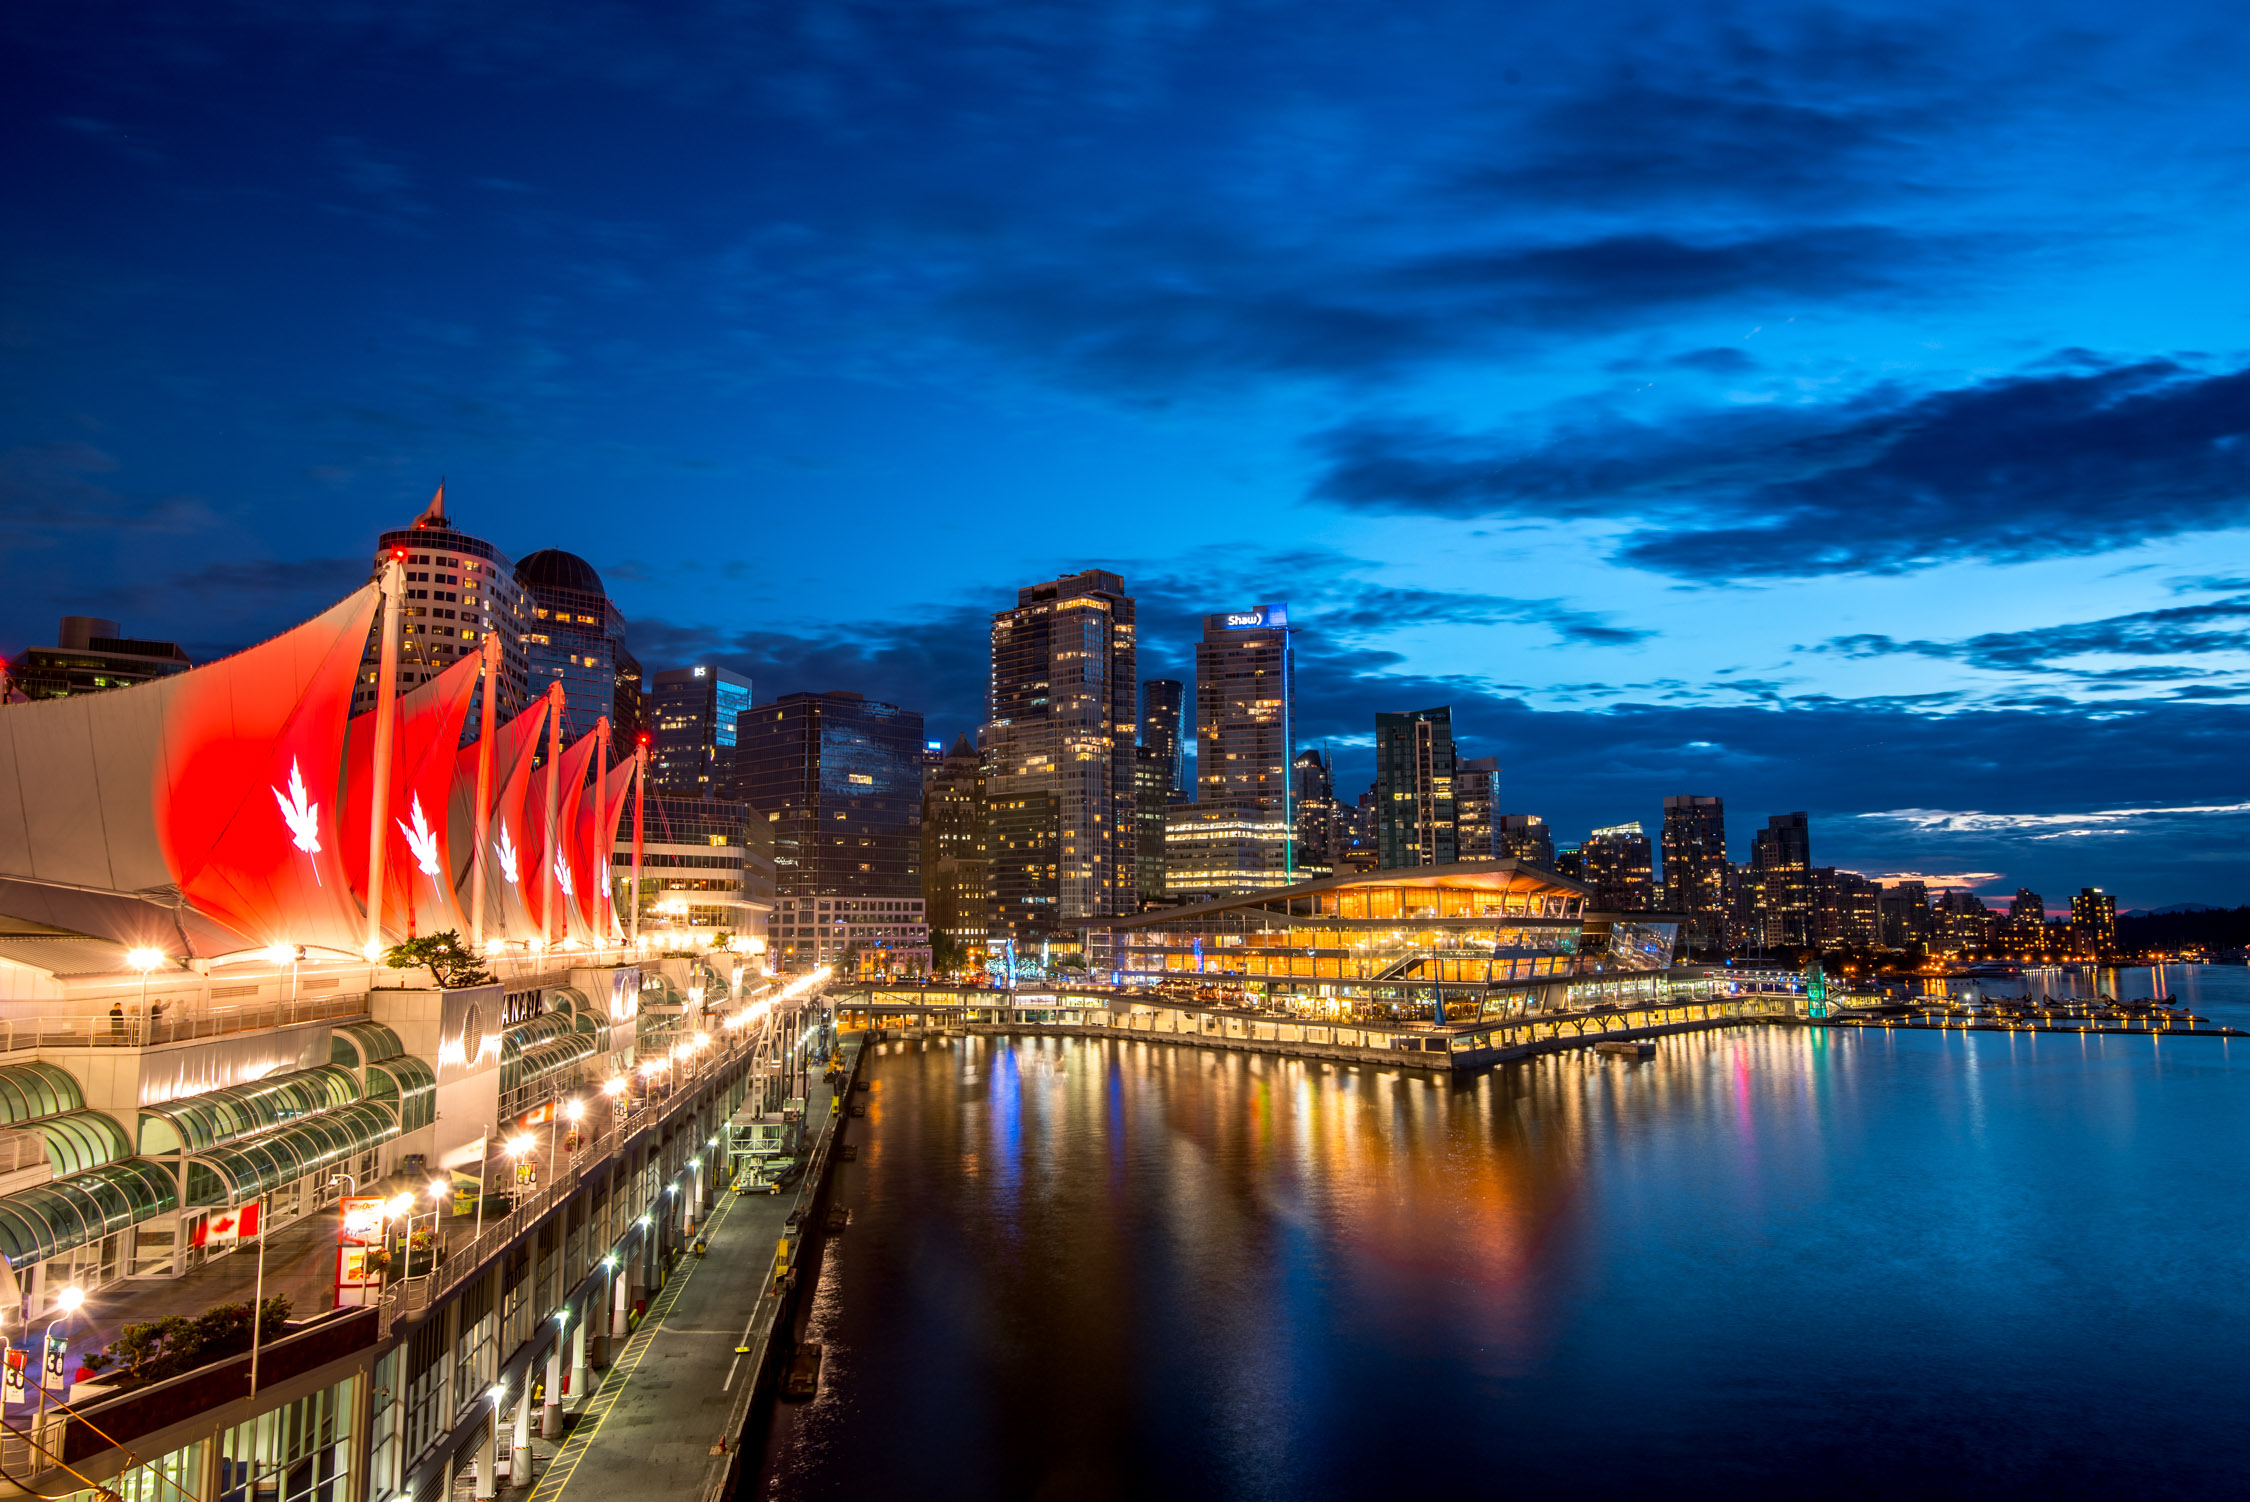 The Fairmont Waterfront is situated next to Vancouver Harbour